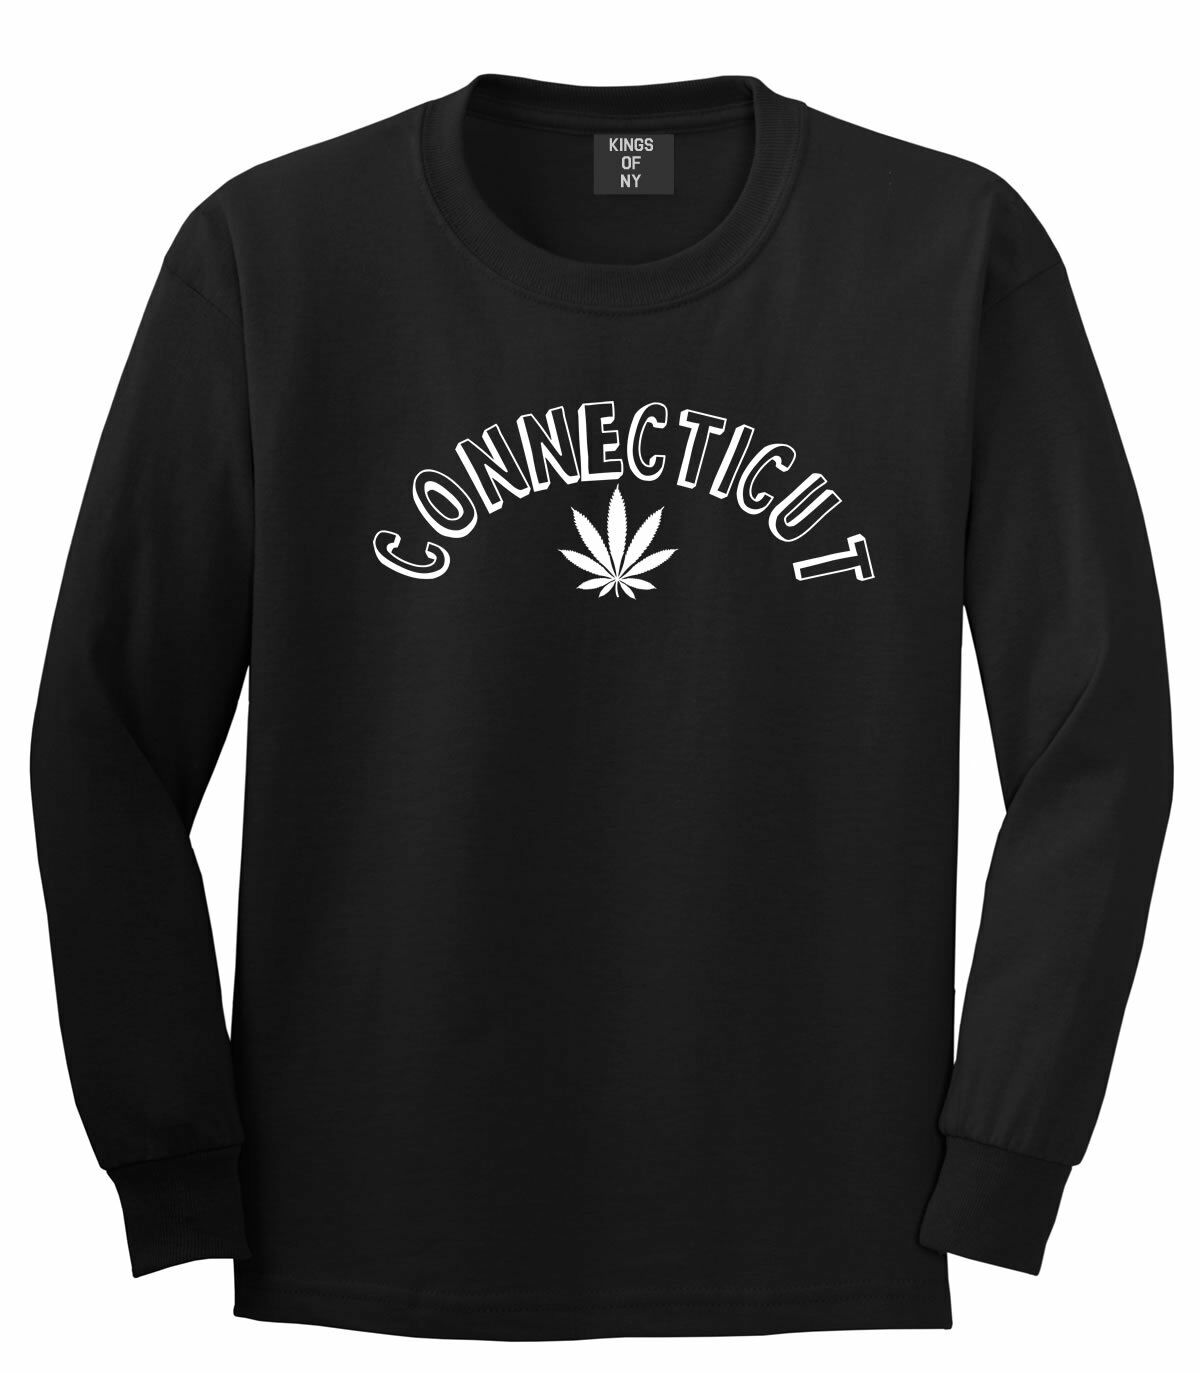 Marijuana Weed Connecticut USA State CT Long Sleeve T-Shirt 1